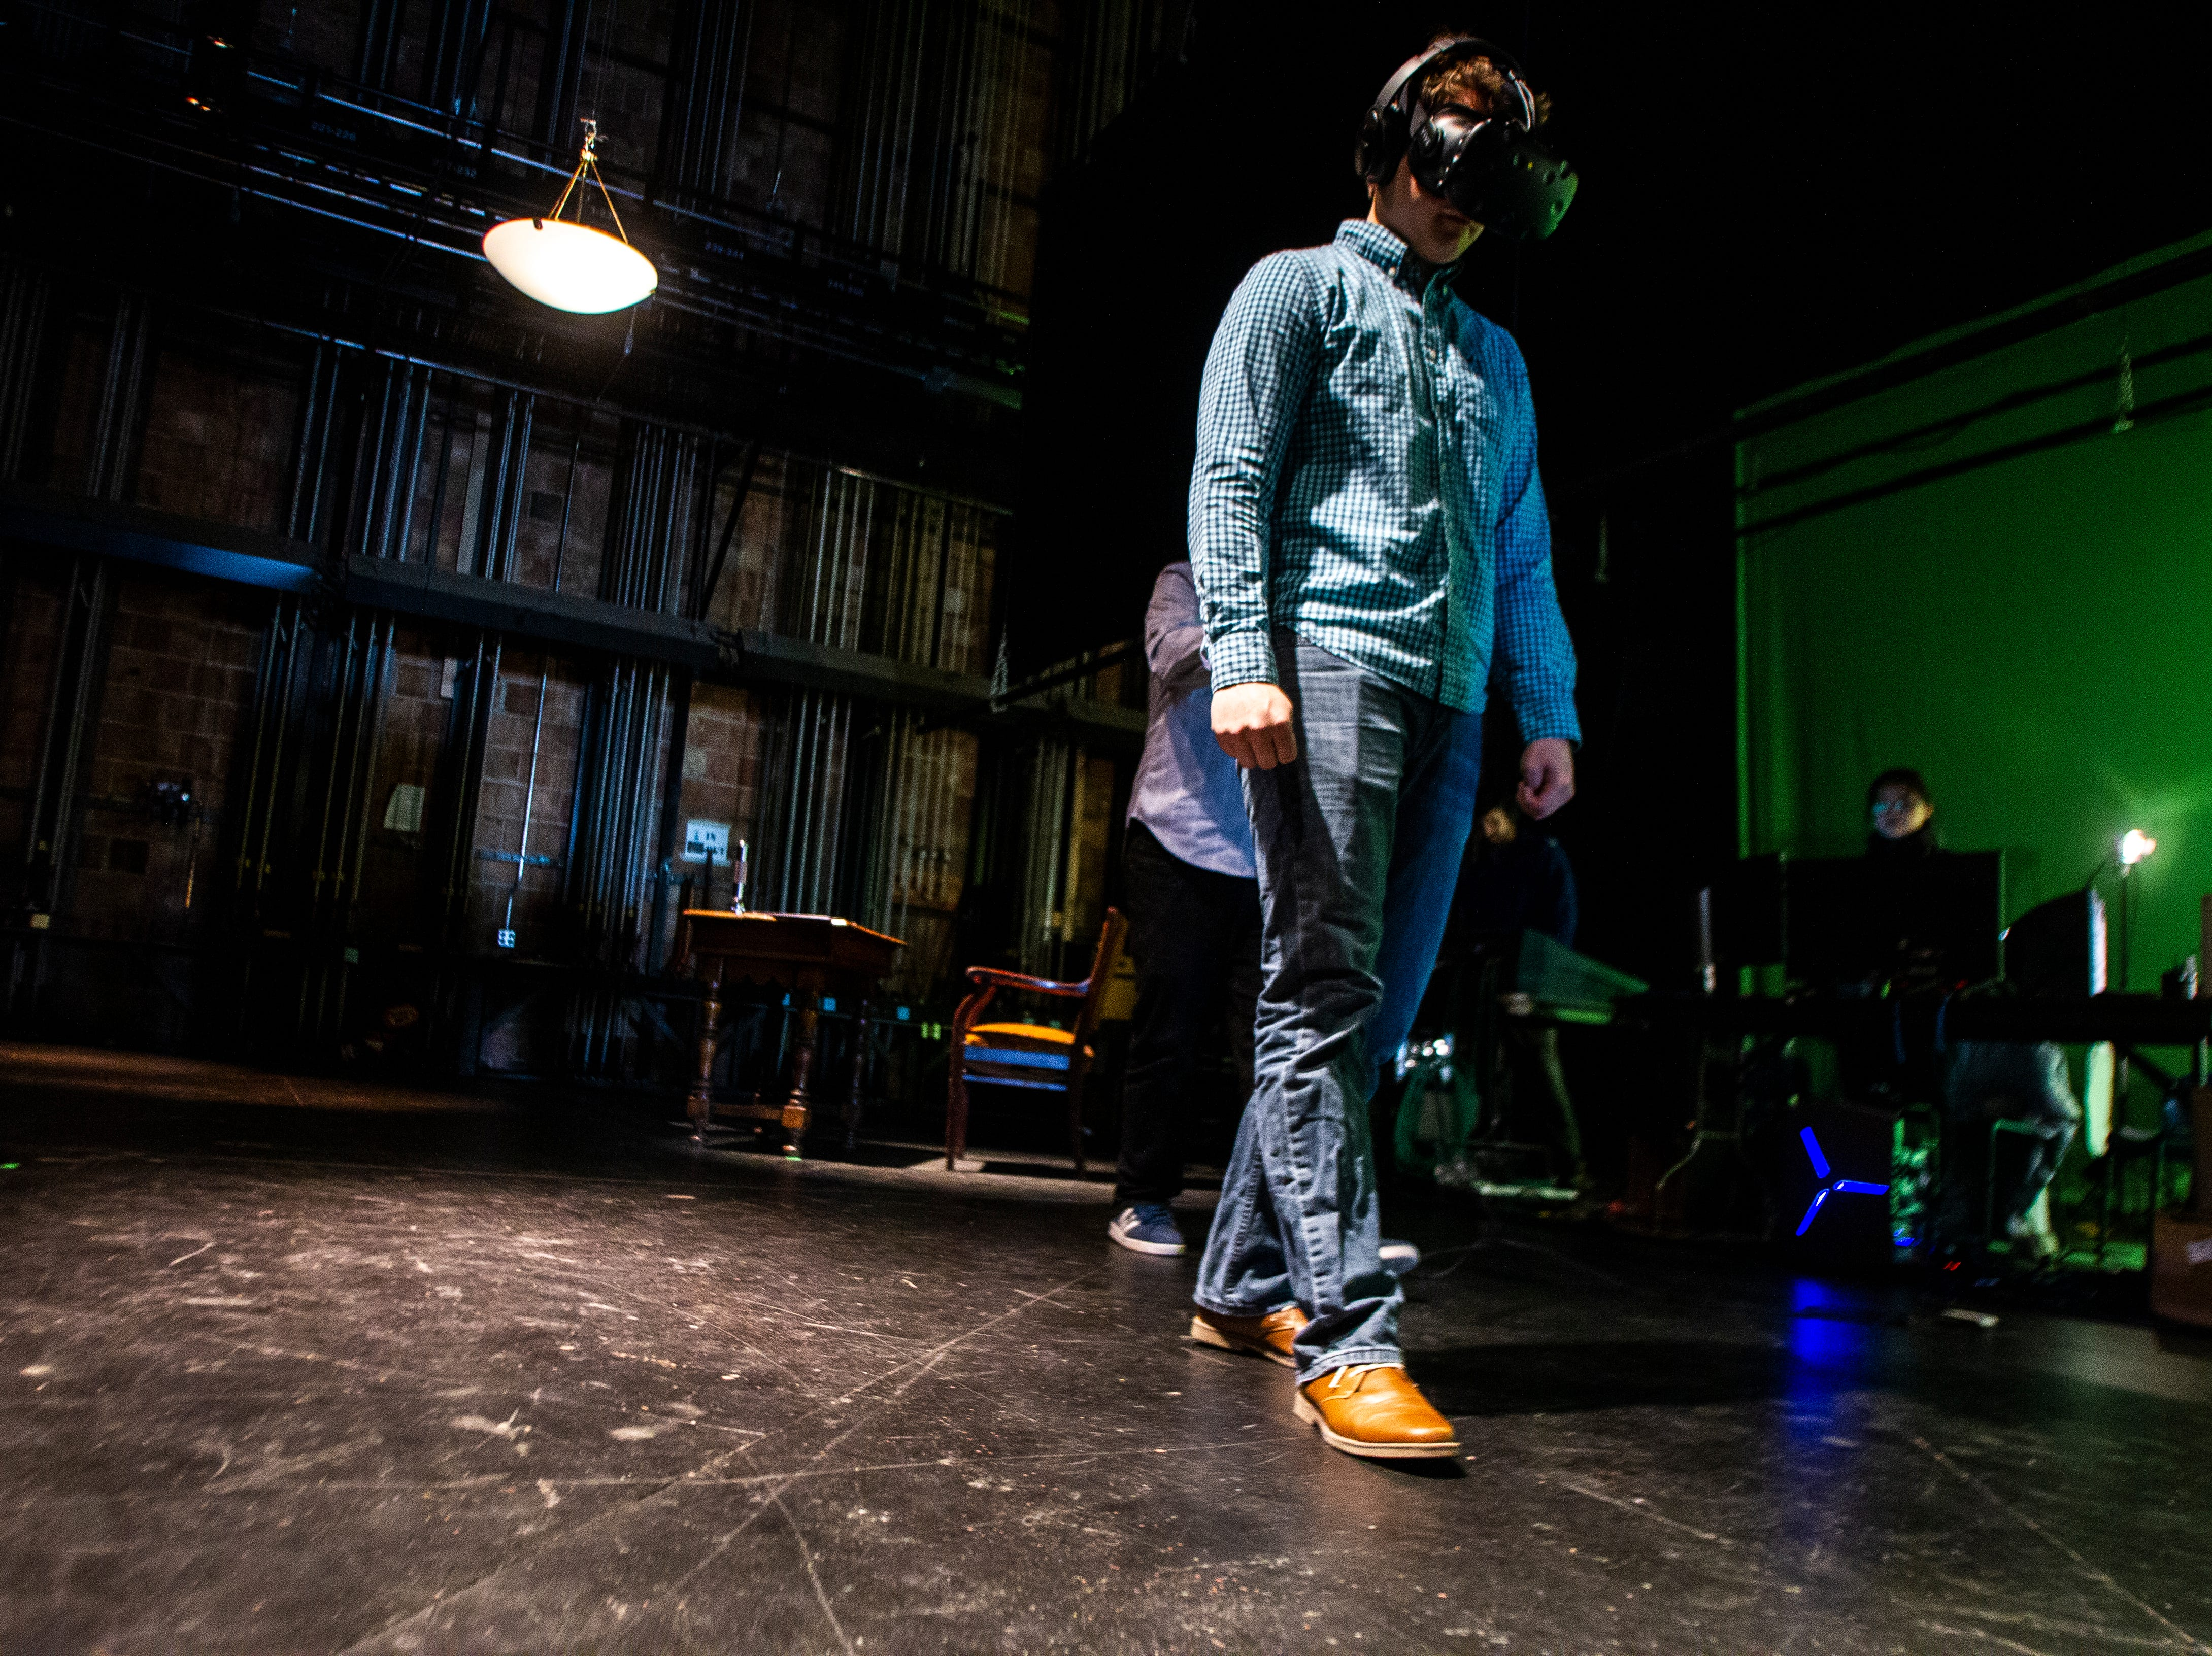 University of Iowa junior Ryan McElroy, majoring in theater with a focus in design, wears a virtual reality headset during a theater performance on Thursday, Dec. 6, 2018, at E.C. Mabie Theater in the UI Theater Building in Iowa City. McElroy is the sound designer for the production.